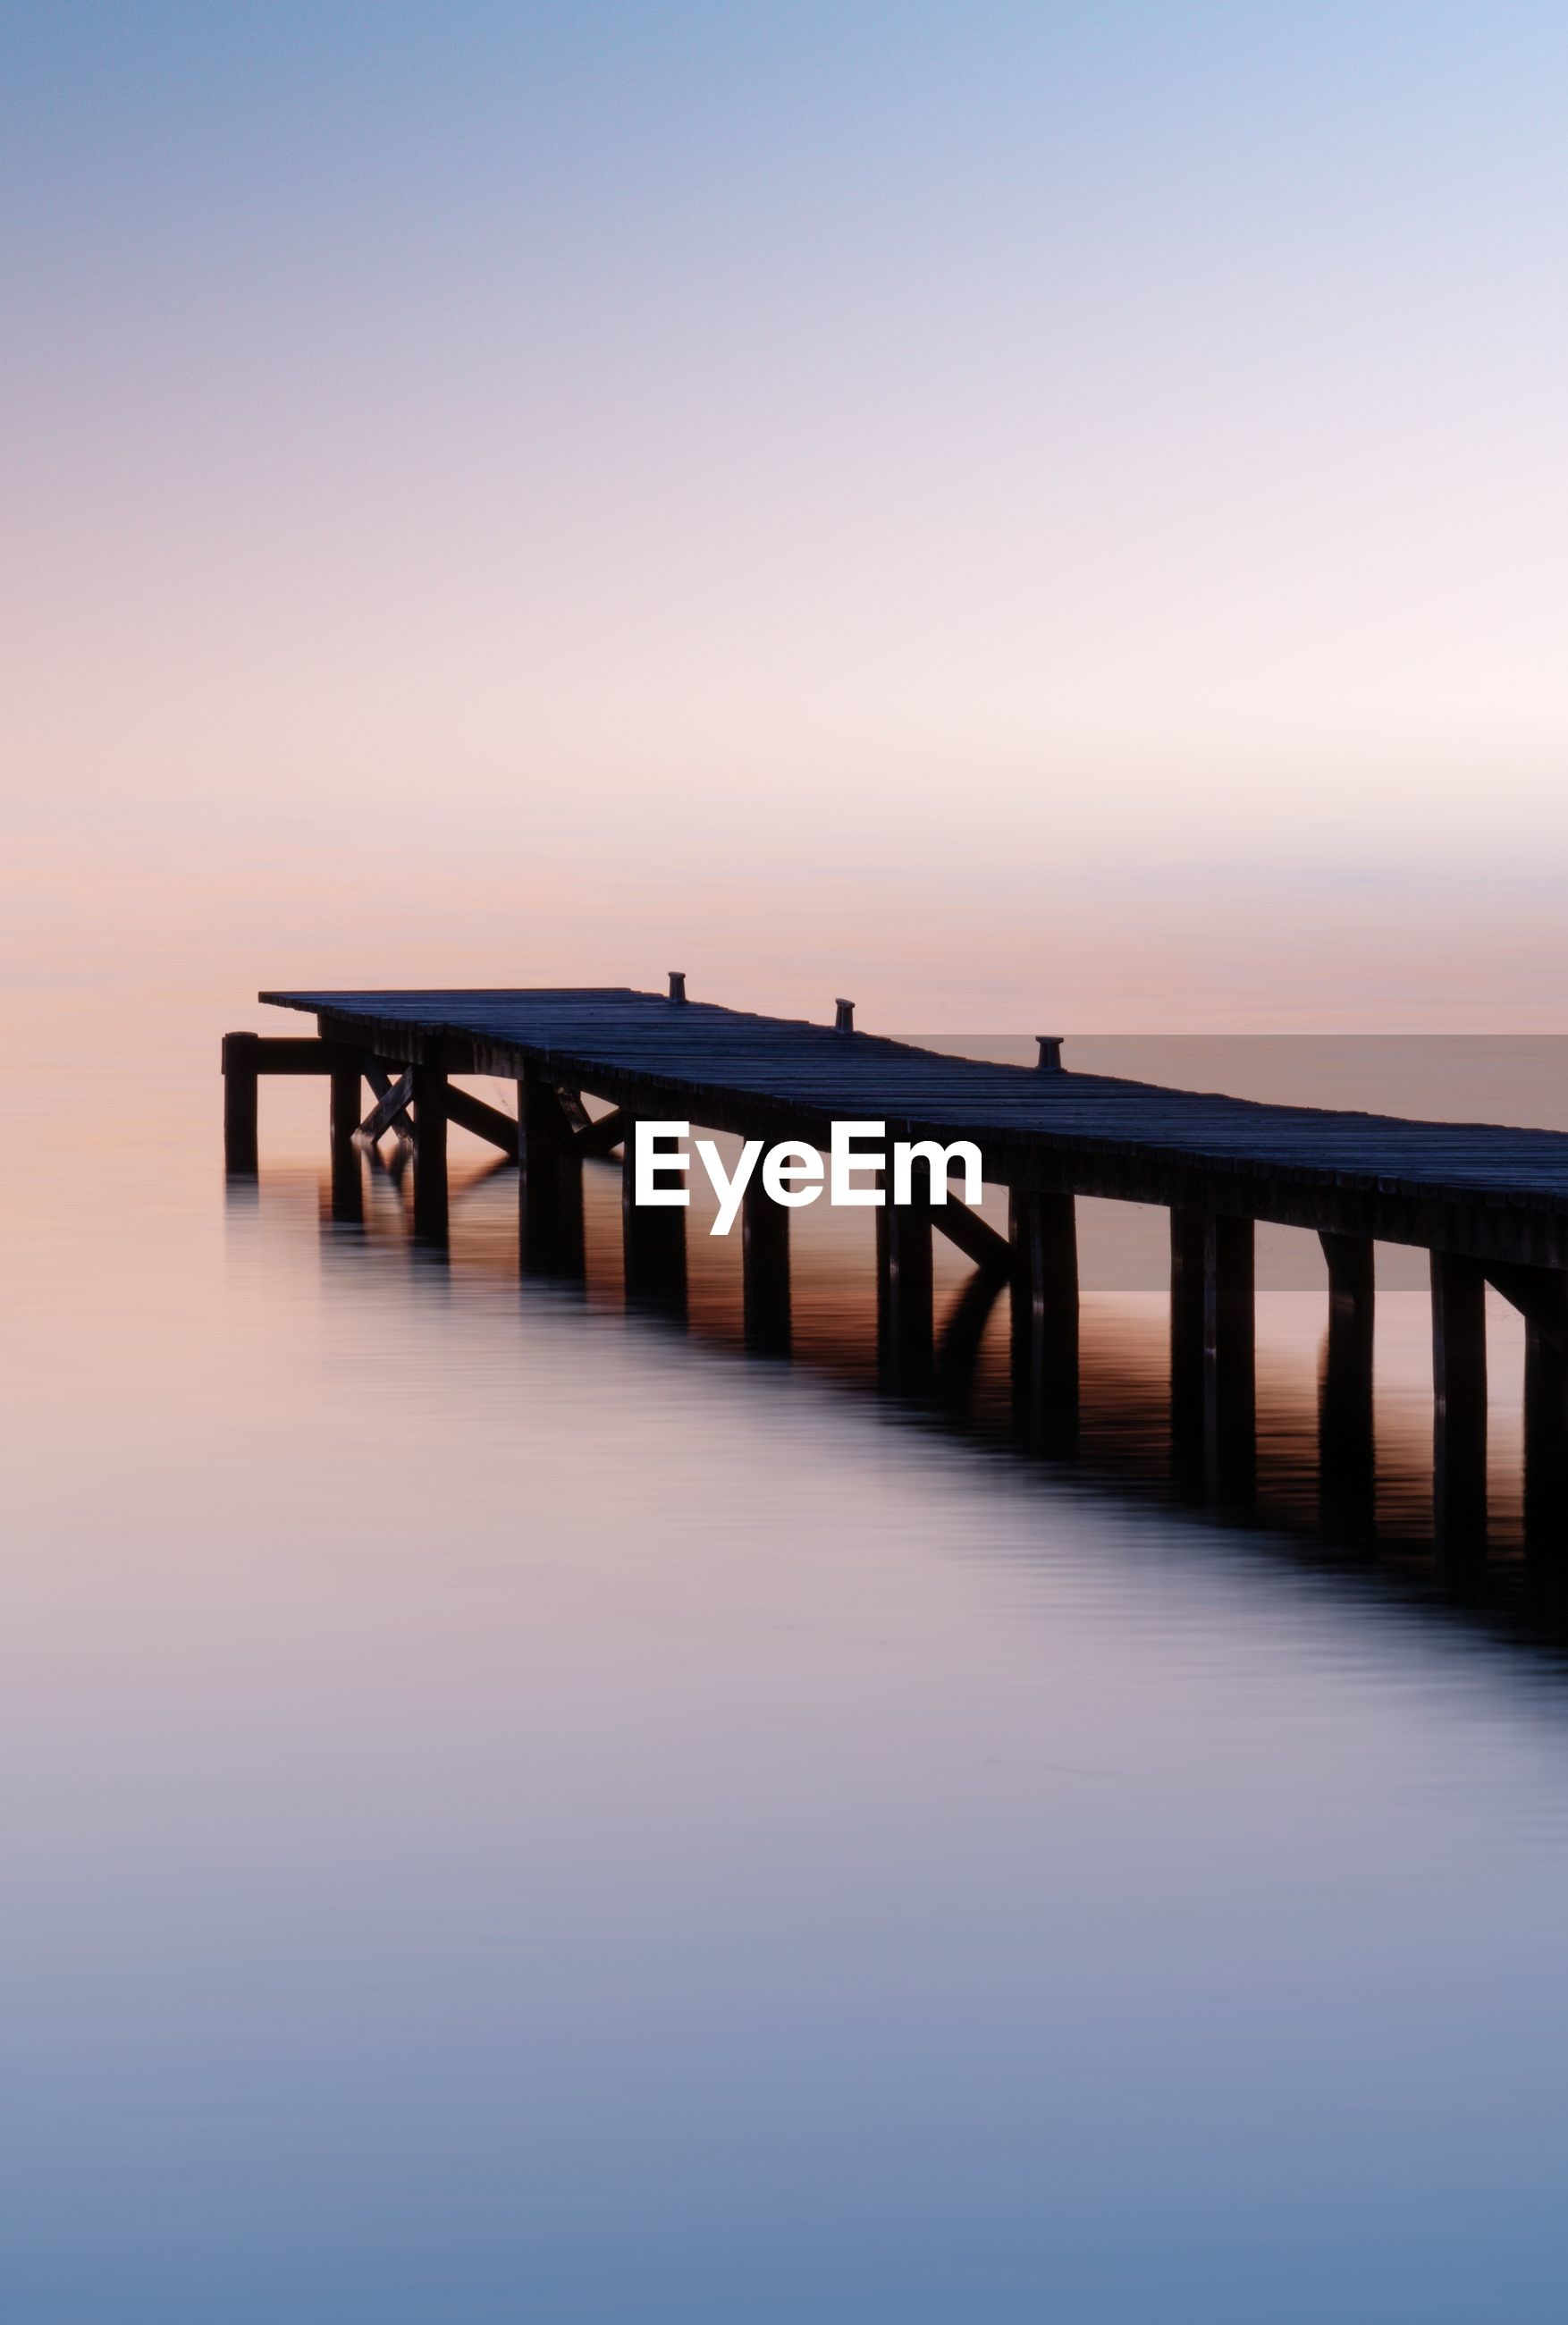 water, sky, sunset, sea, scenics - nature, tranquility, beauty in nature, tranquil scene, connection, bridge, built structure, waterfront, architecture, no people, nature, pier, idyllic, horizon, copy space, bridge - man made structure, horizon over water, outdoors, long